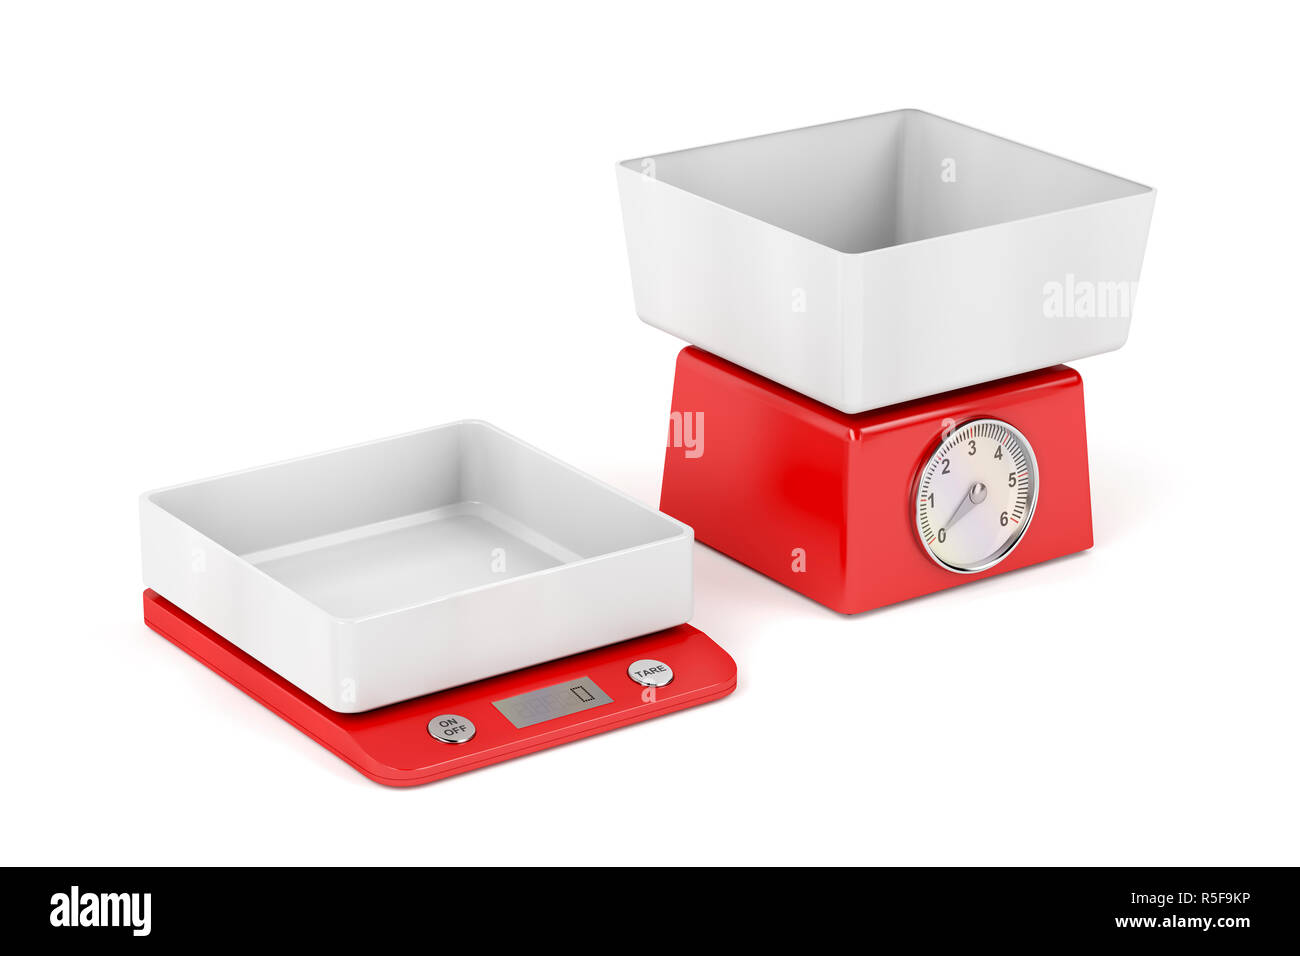 Kitchen weight scales - Stock Image